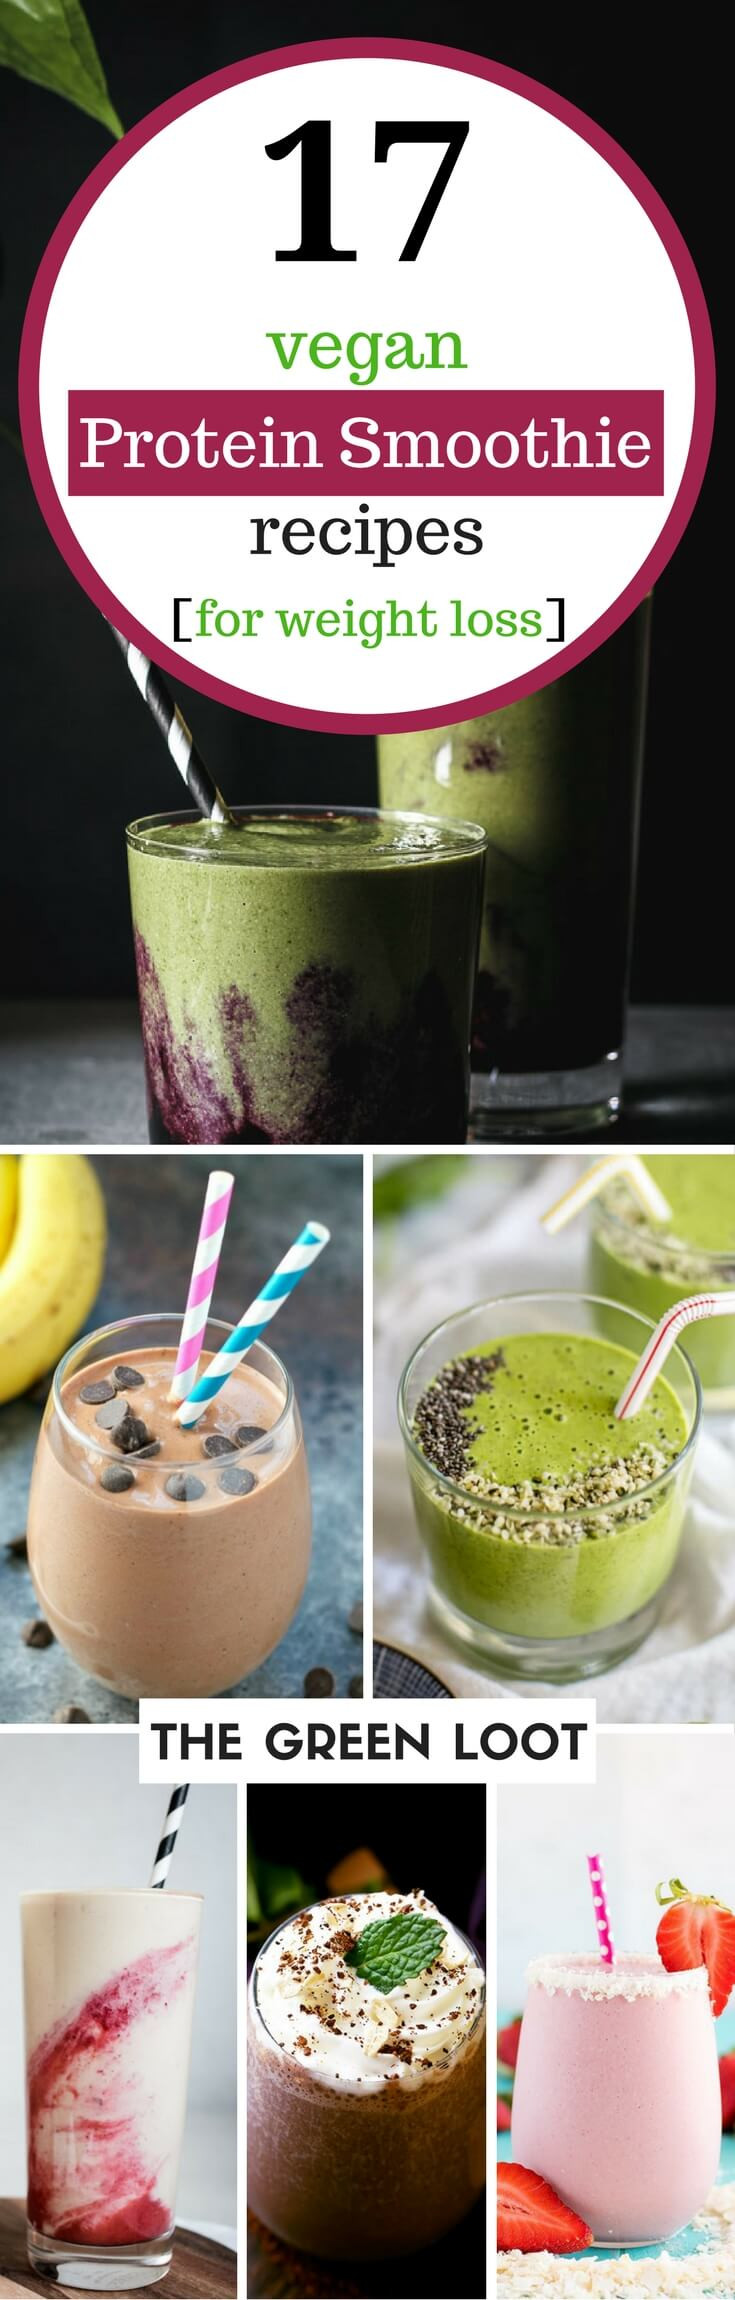 Weight Loss Protein Smoothies 17 Tasty Vegan Protein Smoothie Recipes for Weight Loss